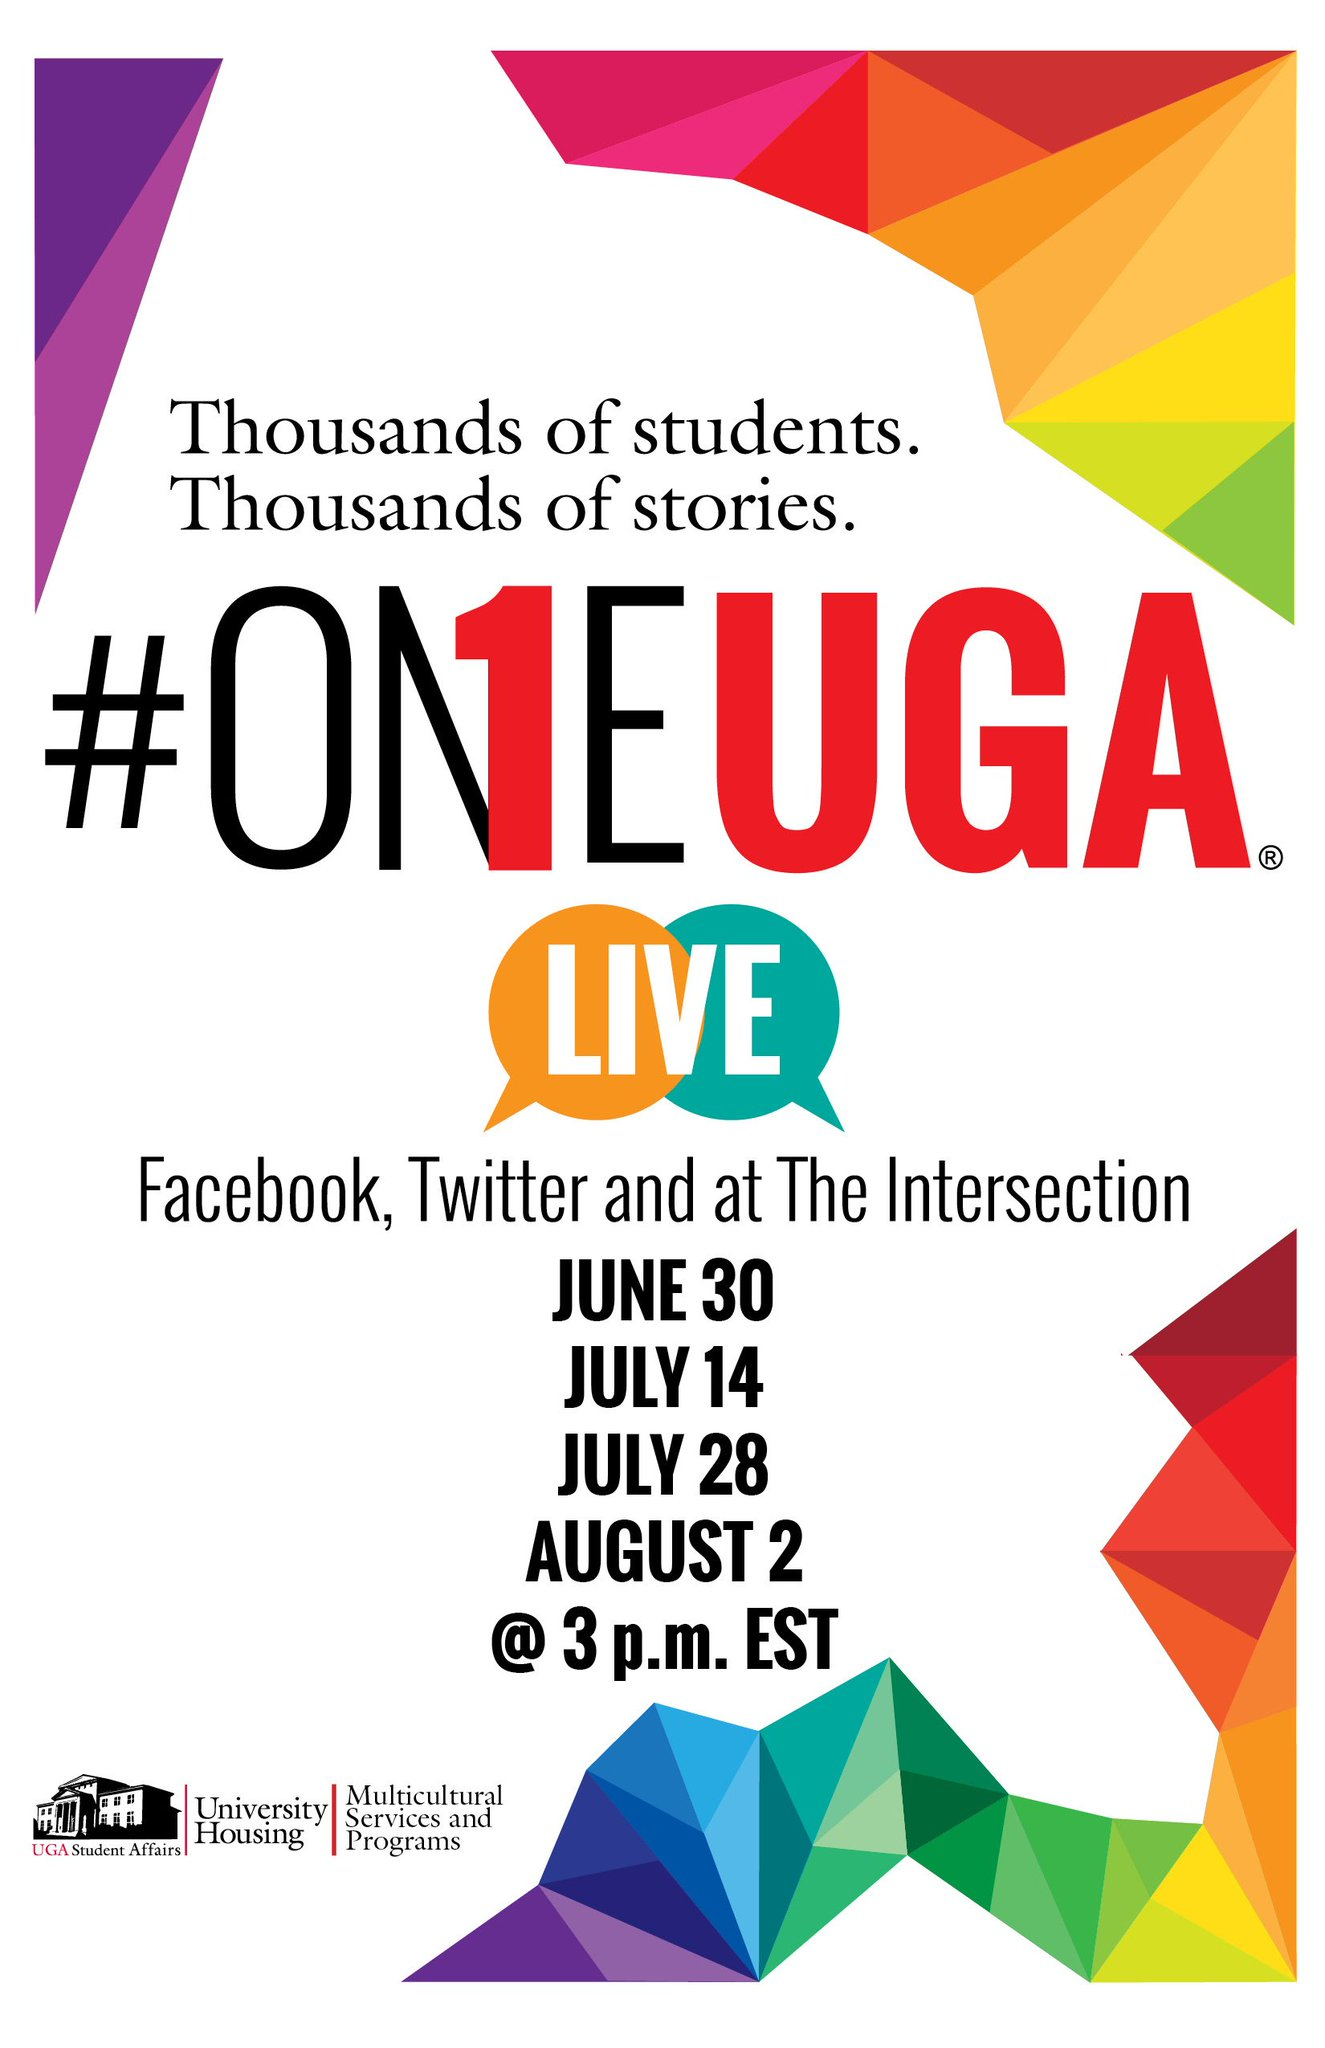 Hey @UGA_2020, help us spread the word about the #OneUGA chat this Thursday! Free swag & more. https://t.co/LGxQvqznRO